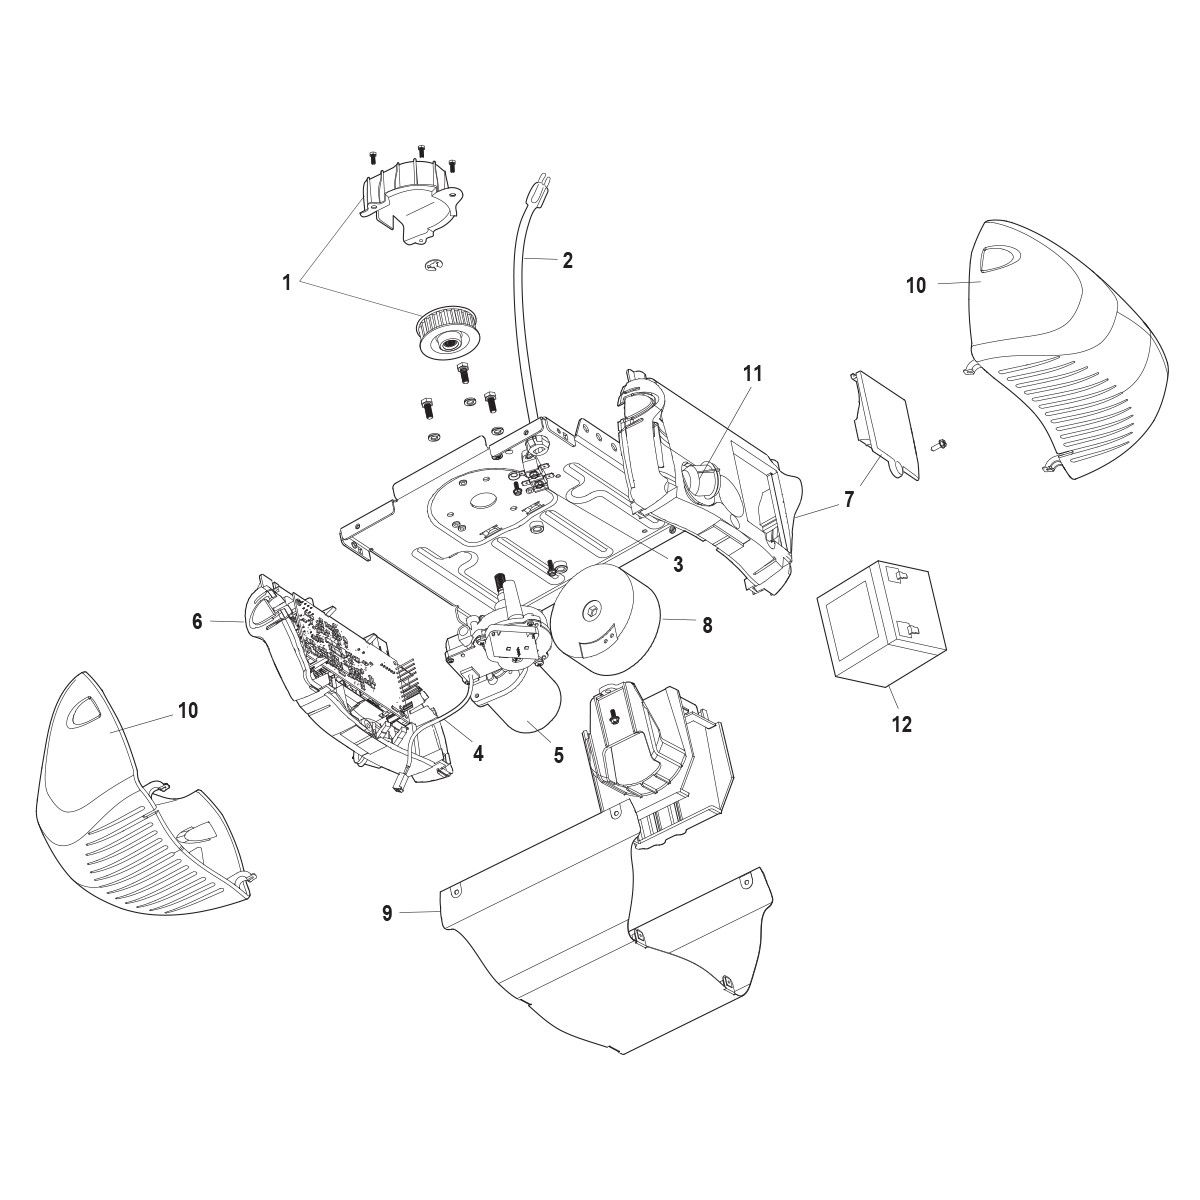 chamberlain hd900d replacement parts